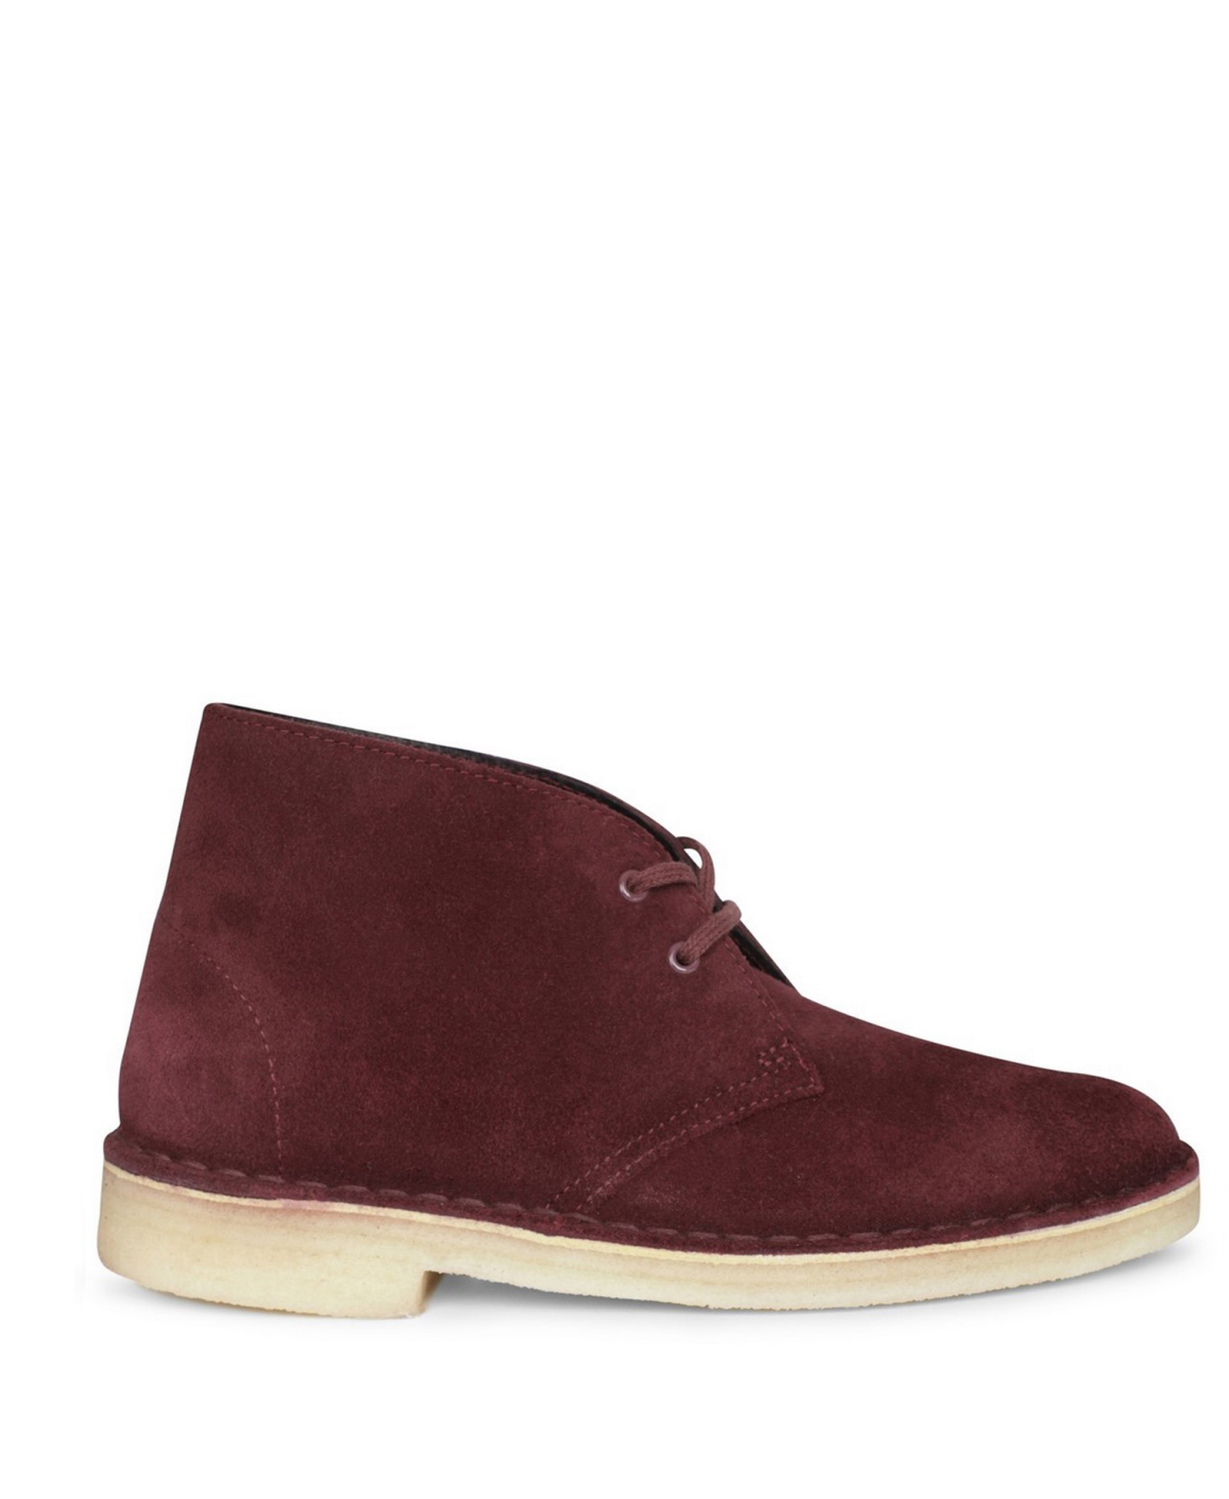 Clarks Veterschoen Bordeaux DESERT BOOT